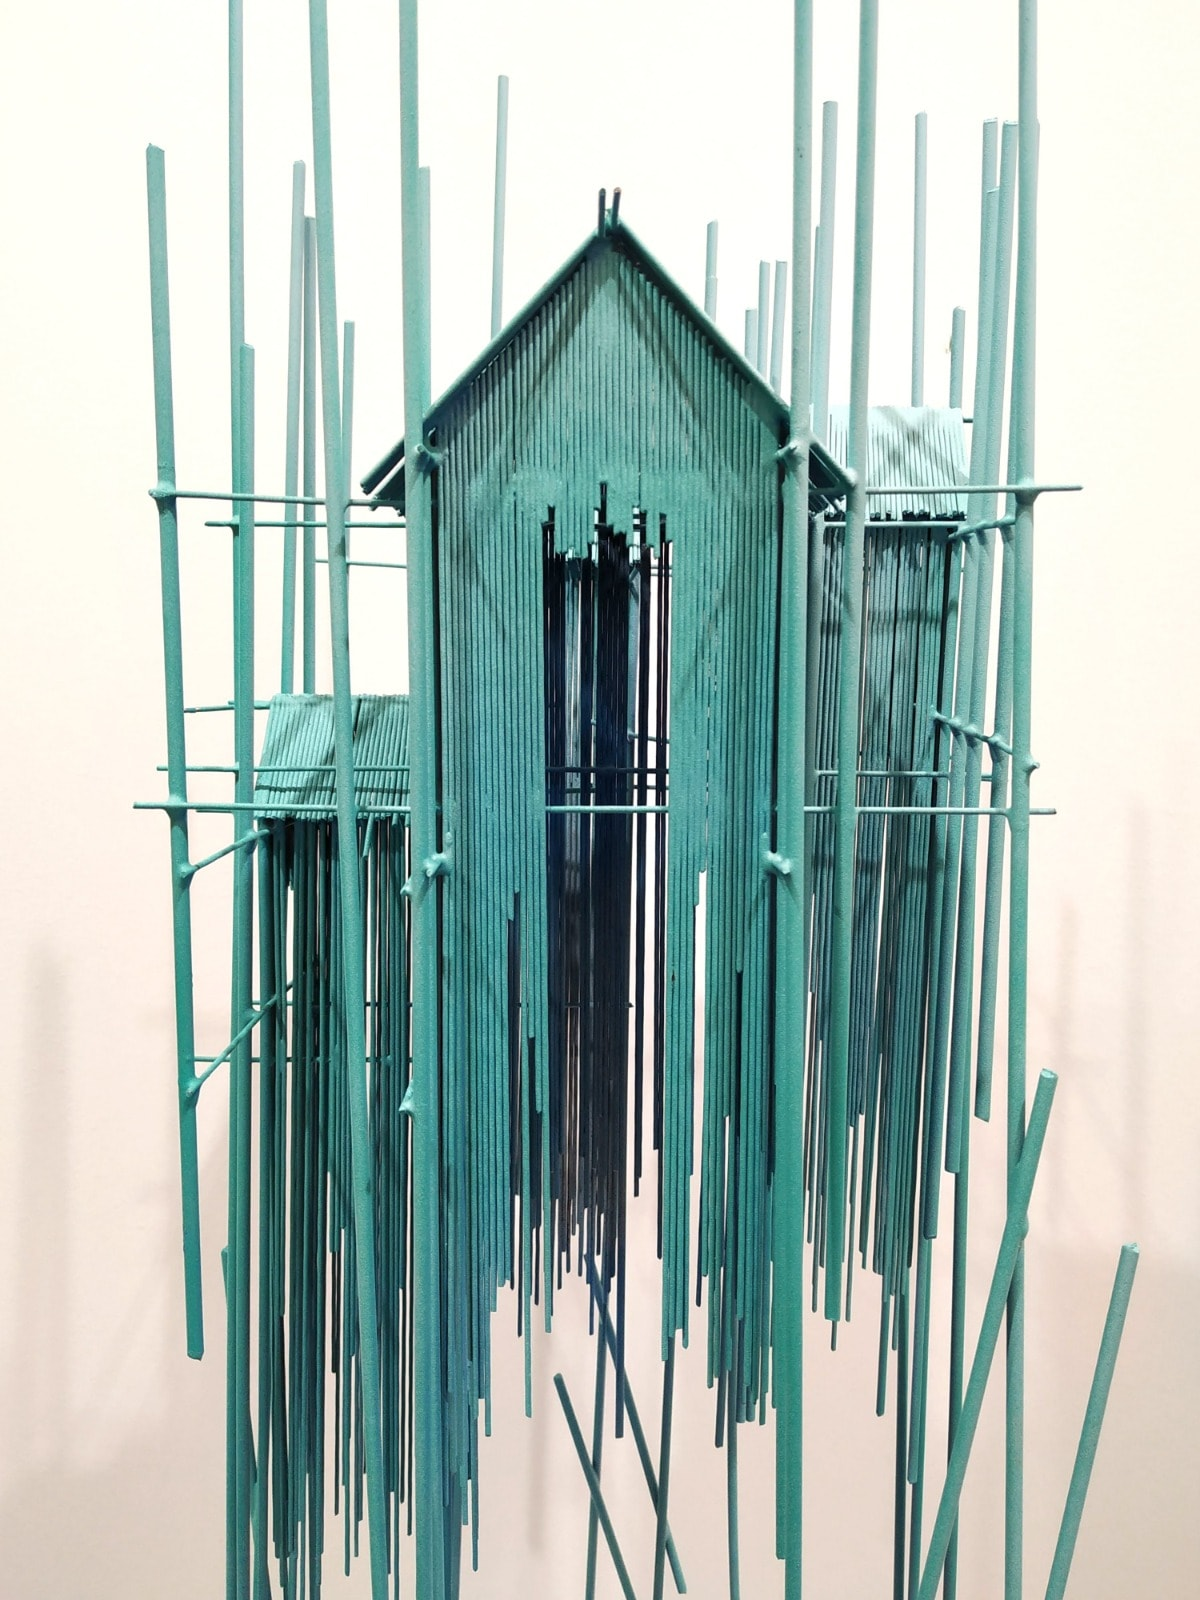 Floating City Blue I - David Moreno -N2 Galeria